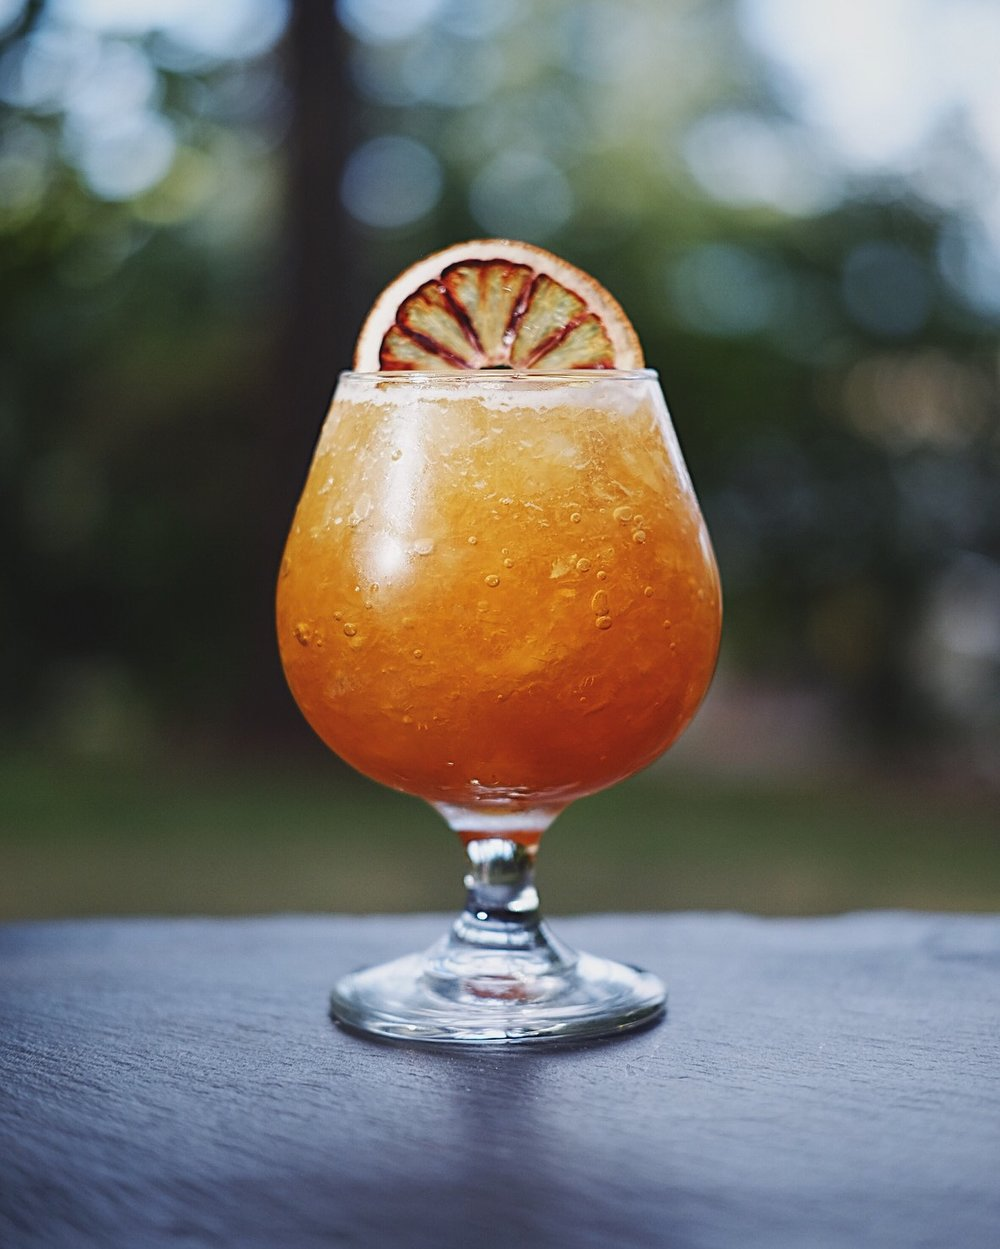 ingredients: - 1 oz blackstrap rum1/2 oz blended rum (i used Eclipse, because duh)3/4 oz Kashmiri Amaro3/4 oz fresh lemon juice1/2 oz Falernum1/2 oz Demerara syrup3 dashes barrel aged bittersGarnish: dehydrated blood orange wheel